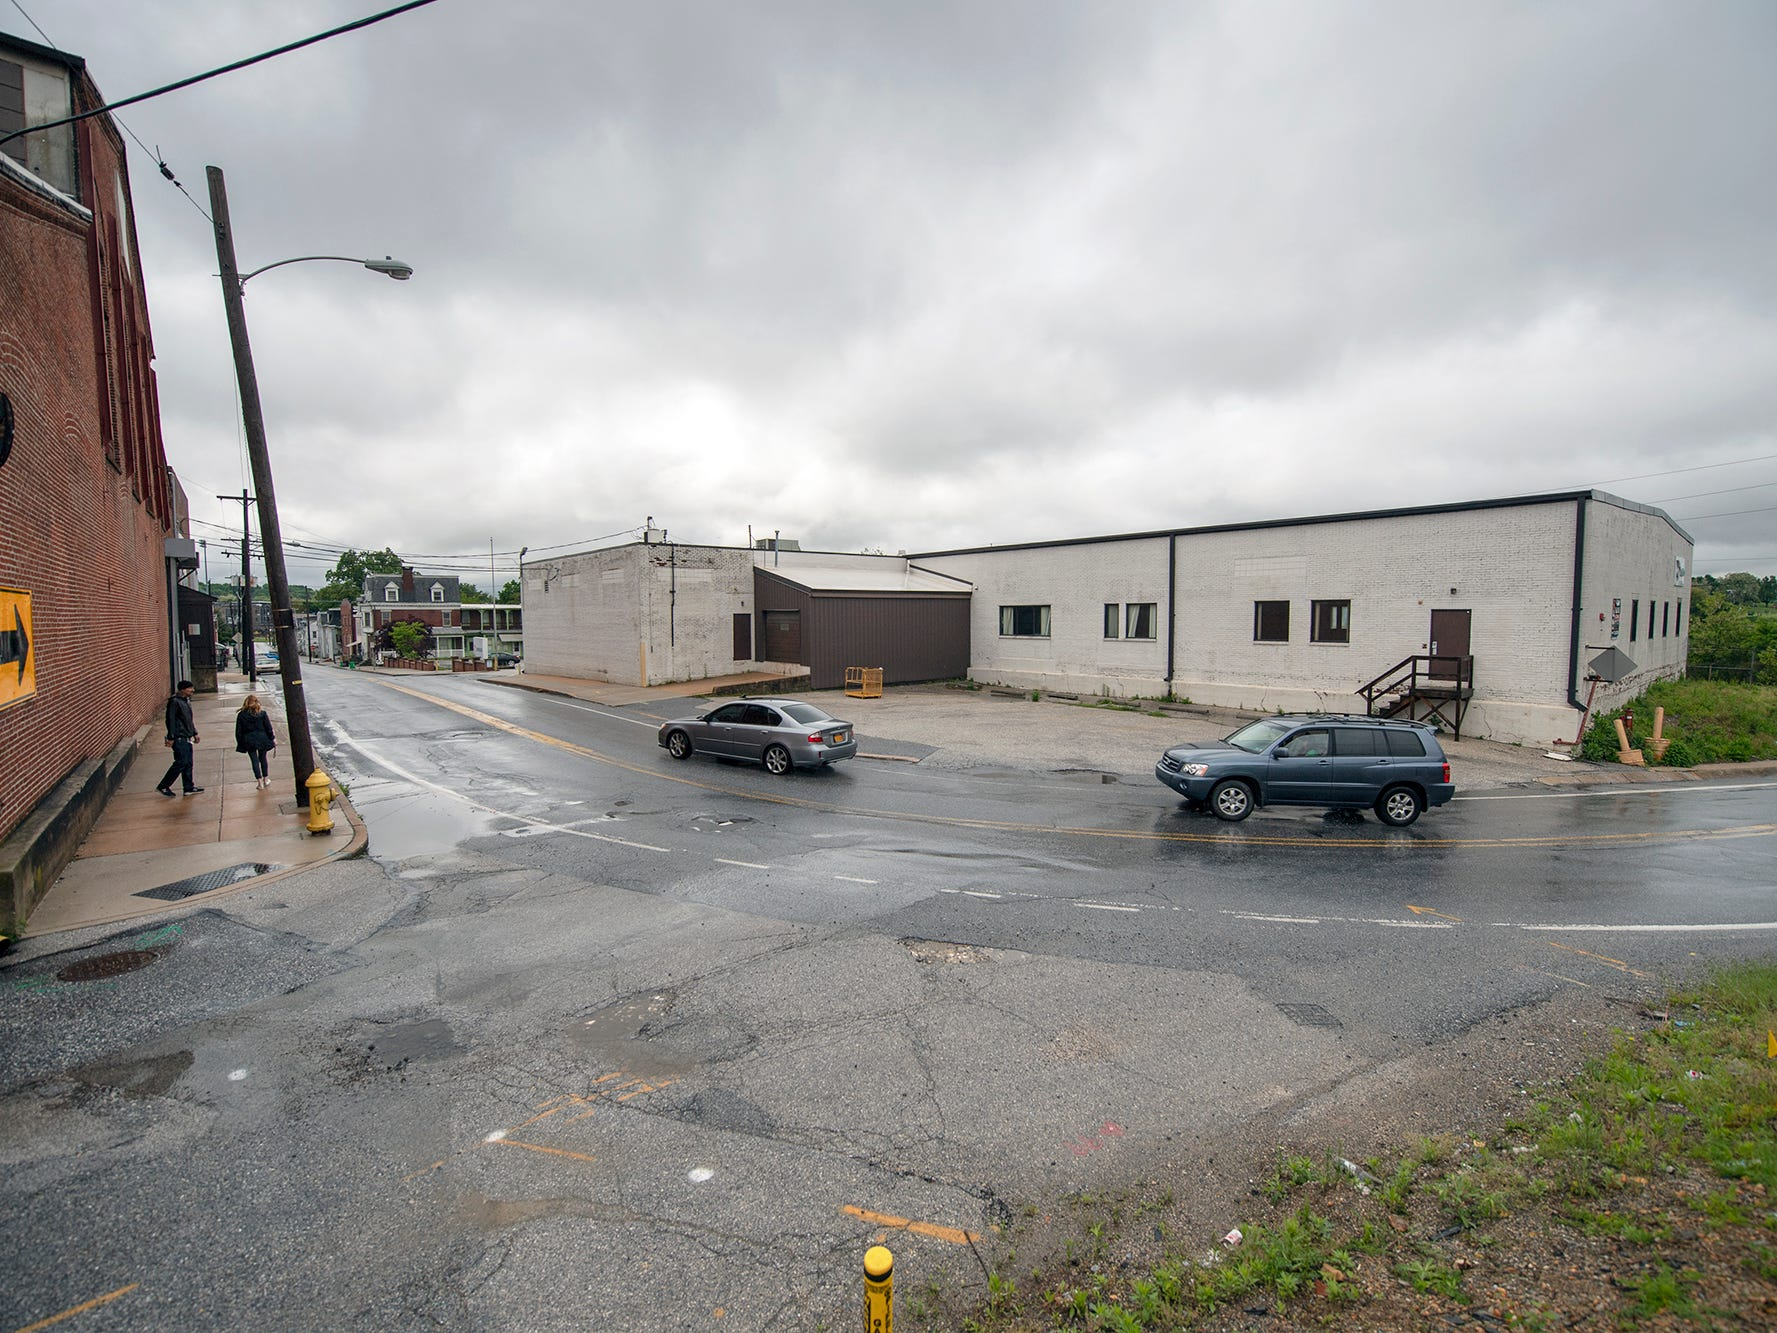 Looking west on Arch Street where it intersects with Loucks Mill Road. Metso Corp. closed down its manufacturing facility in York in 2016, but the old buildings along Arch Street may have new life soon.